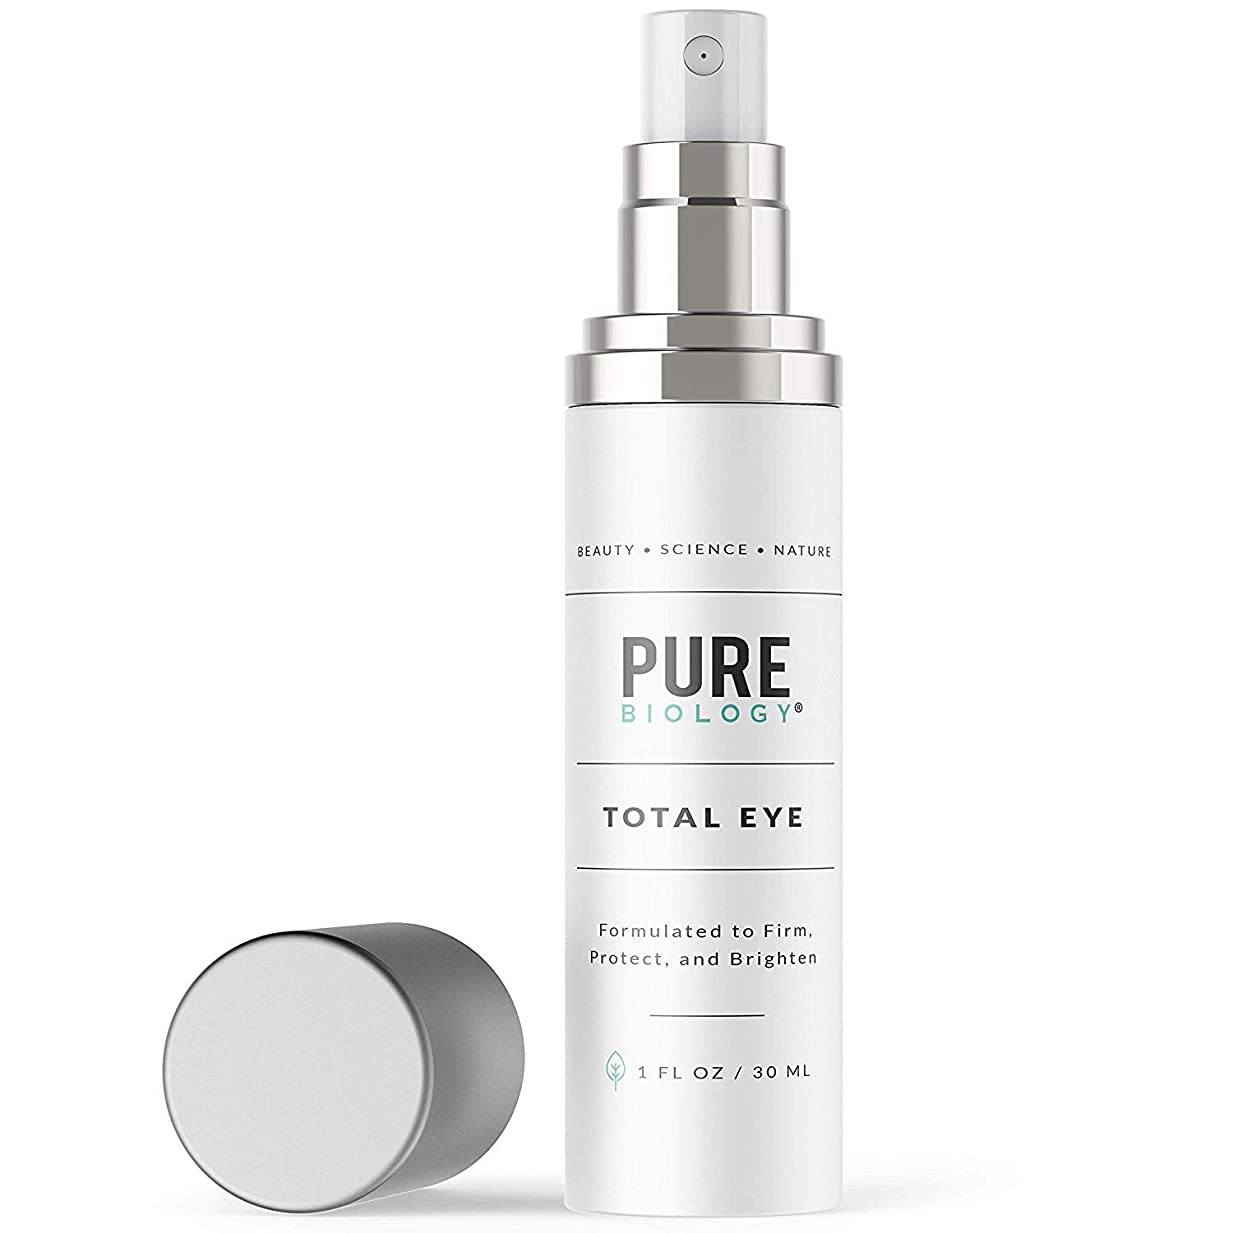 評議会驚聴覚[Pure Biology] [アイクリームTotal Eye Cream with Vitamin C + E, Hyaluronic Acid & Anti Aging Complexes to Reduce Dark Circles, Puffiness, Under Eye Bags, Wrinkles & Fine Lines] (並行輸入品)